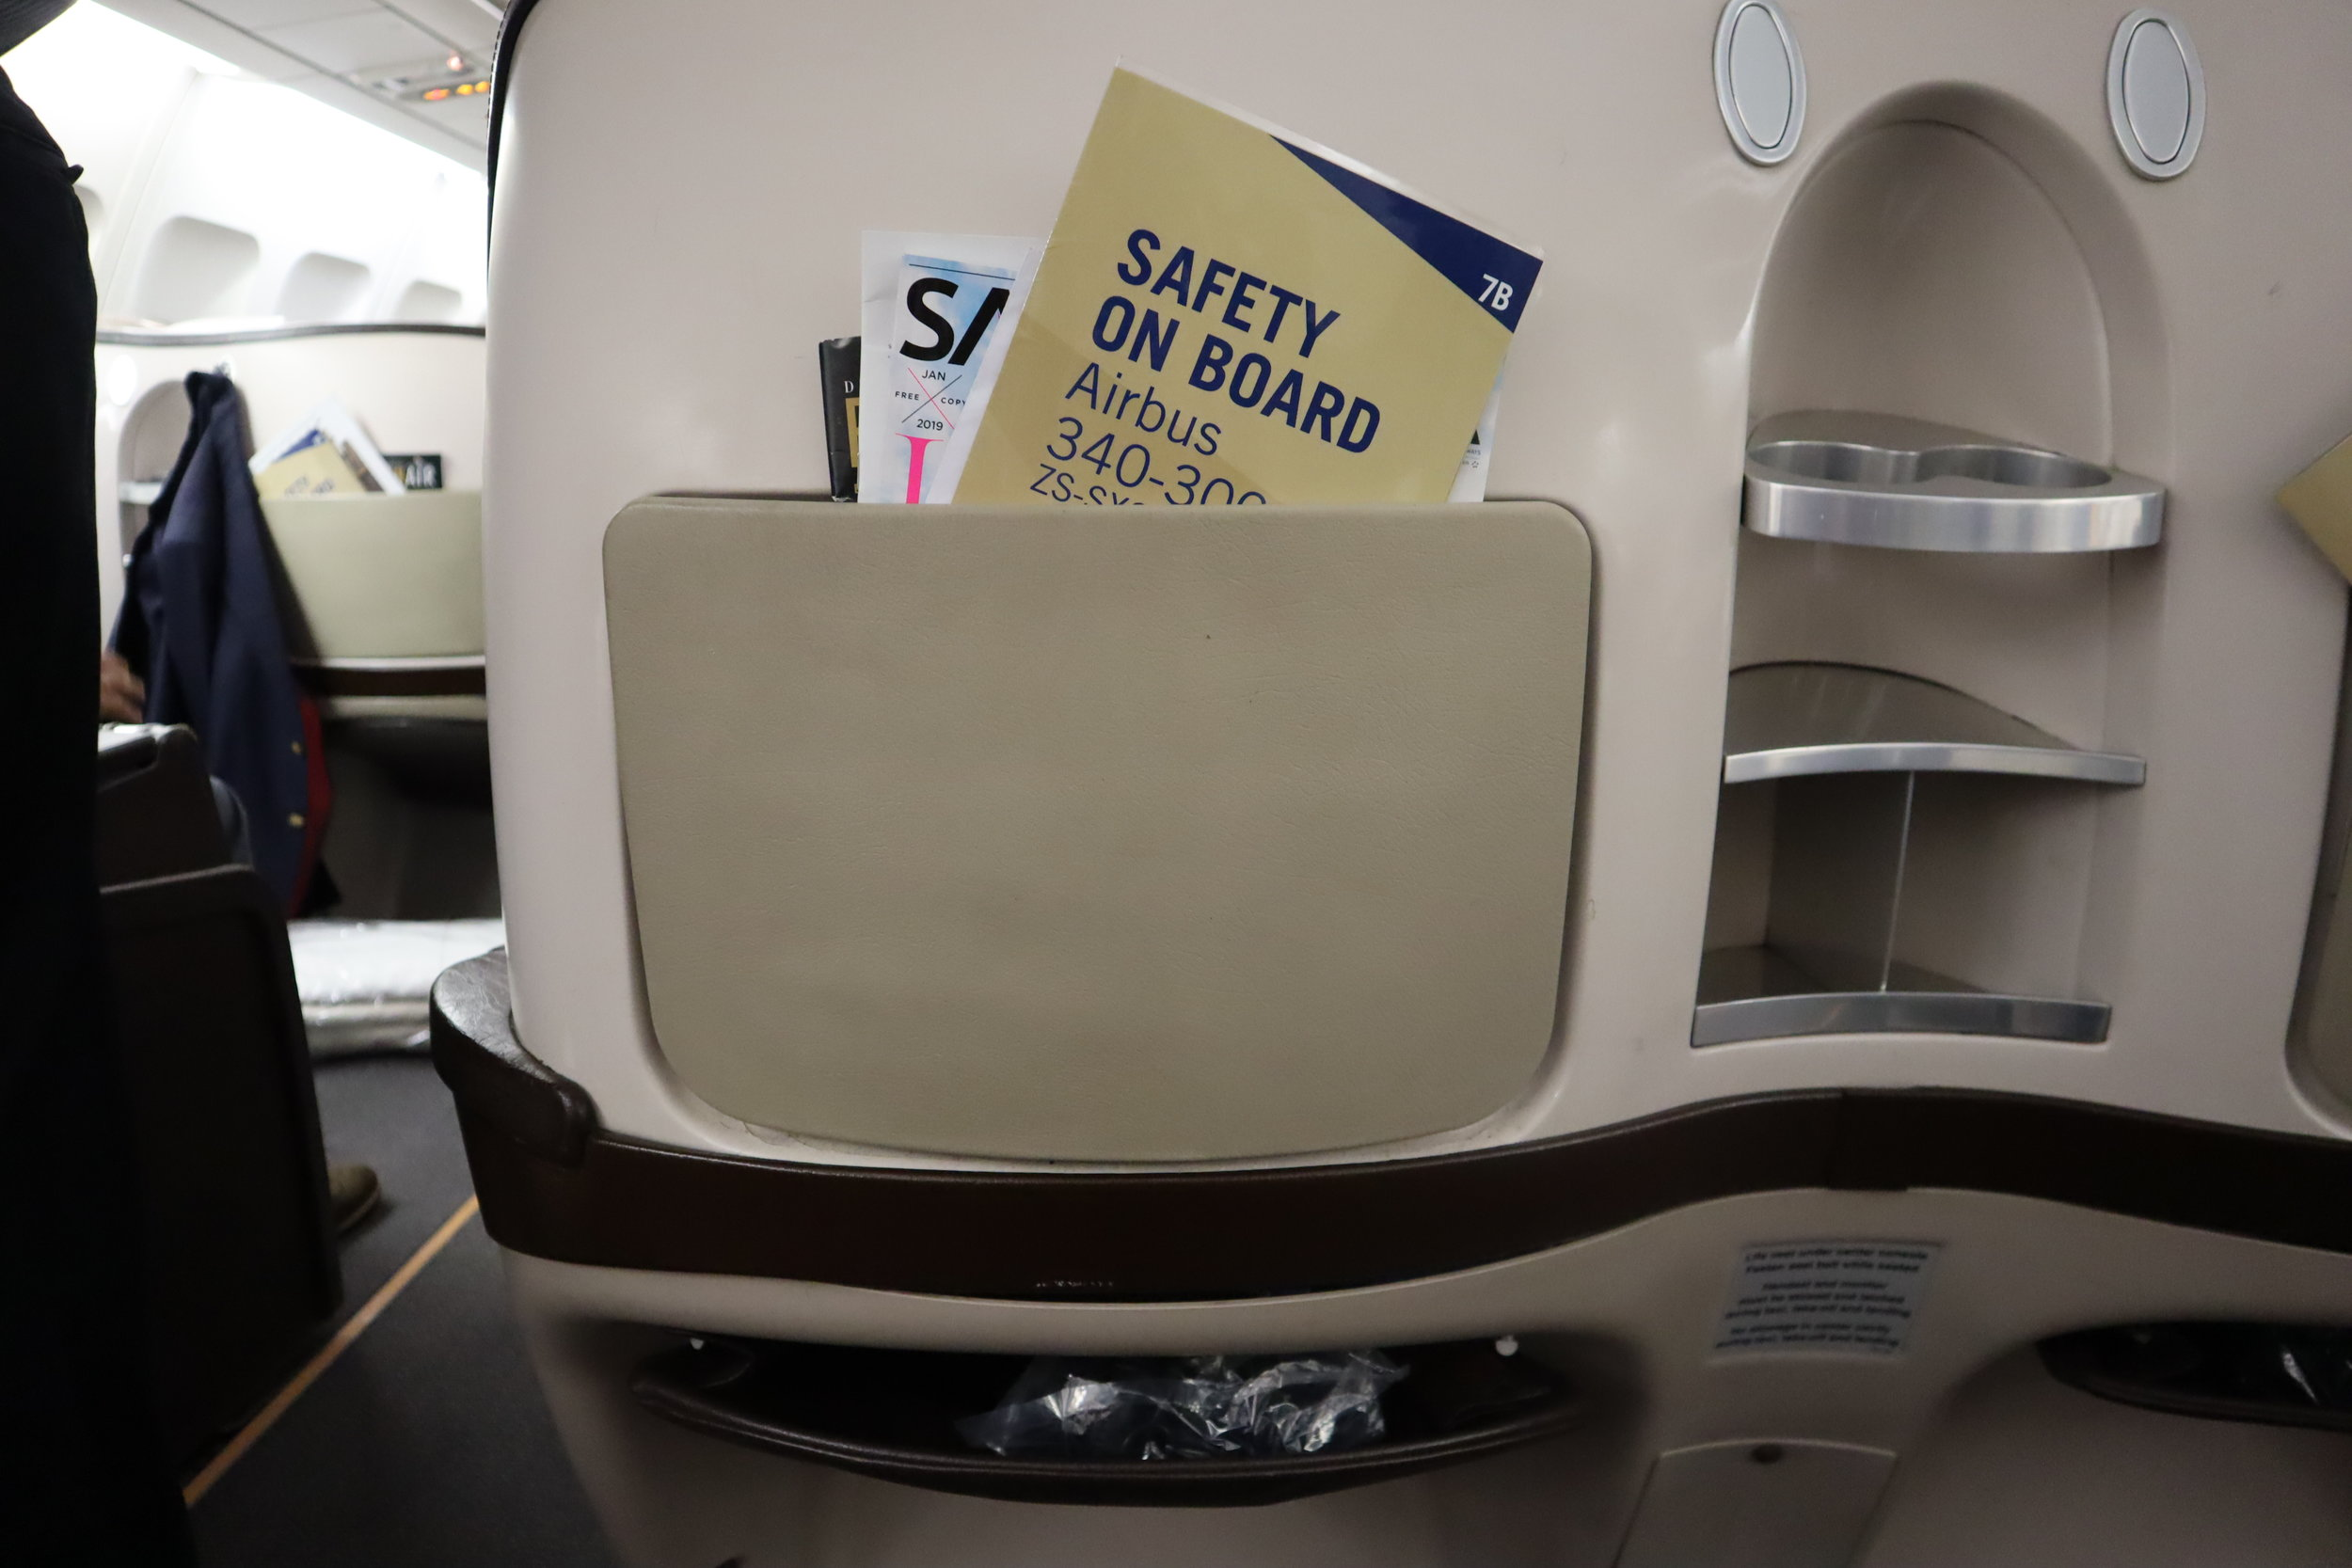 South African Airways business class – Literature pouch